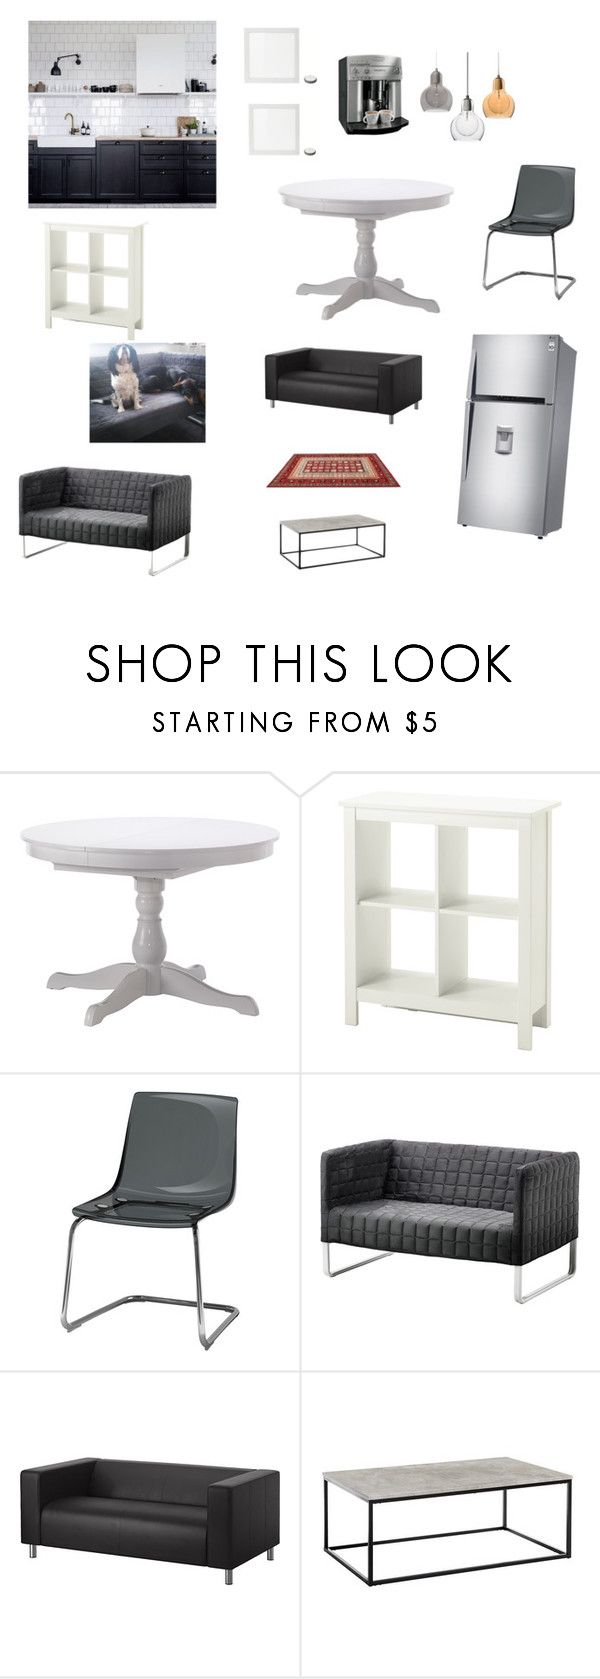 """Untitled #5"" by spimonique on Polyvore featuring interior, interiors, interior design, home, home decor, interior decorating, Klippan and kitchen"